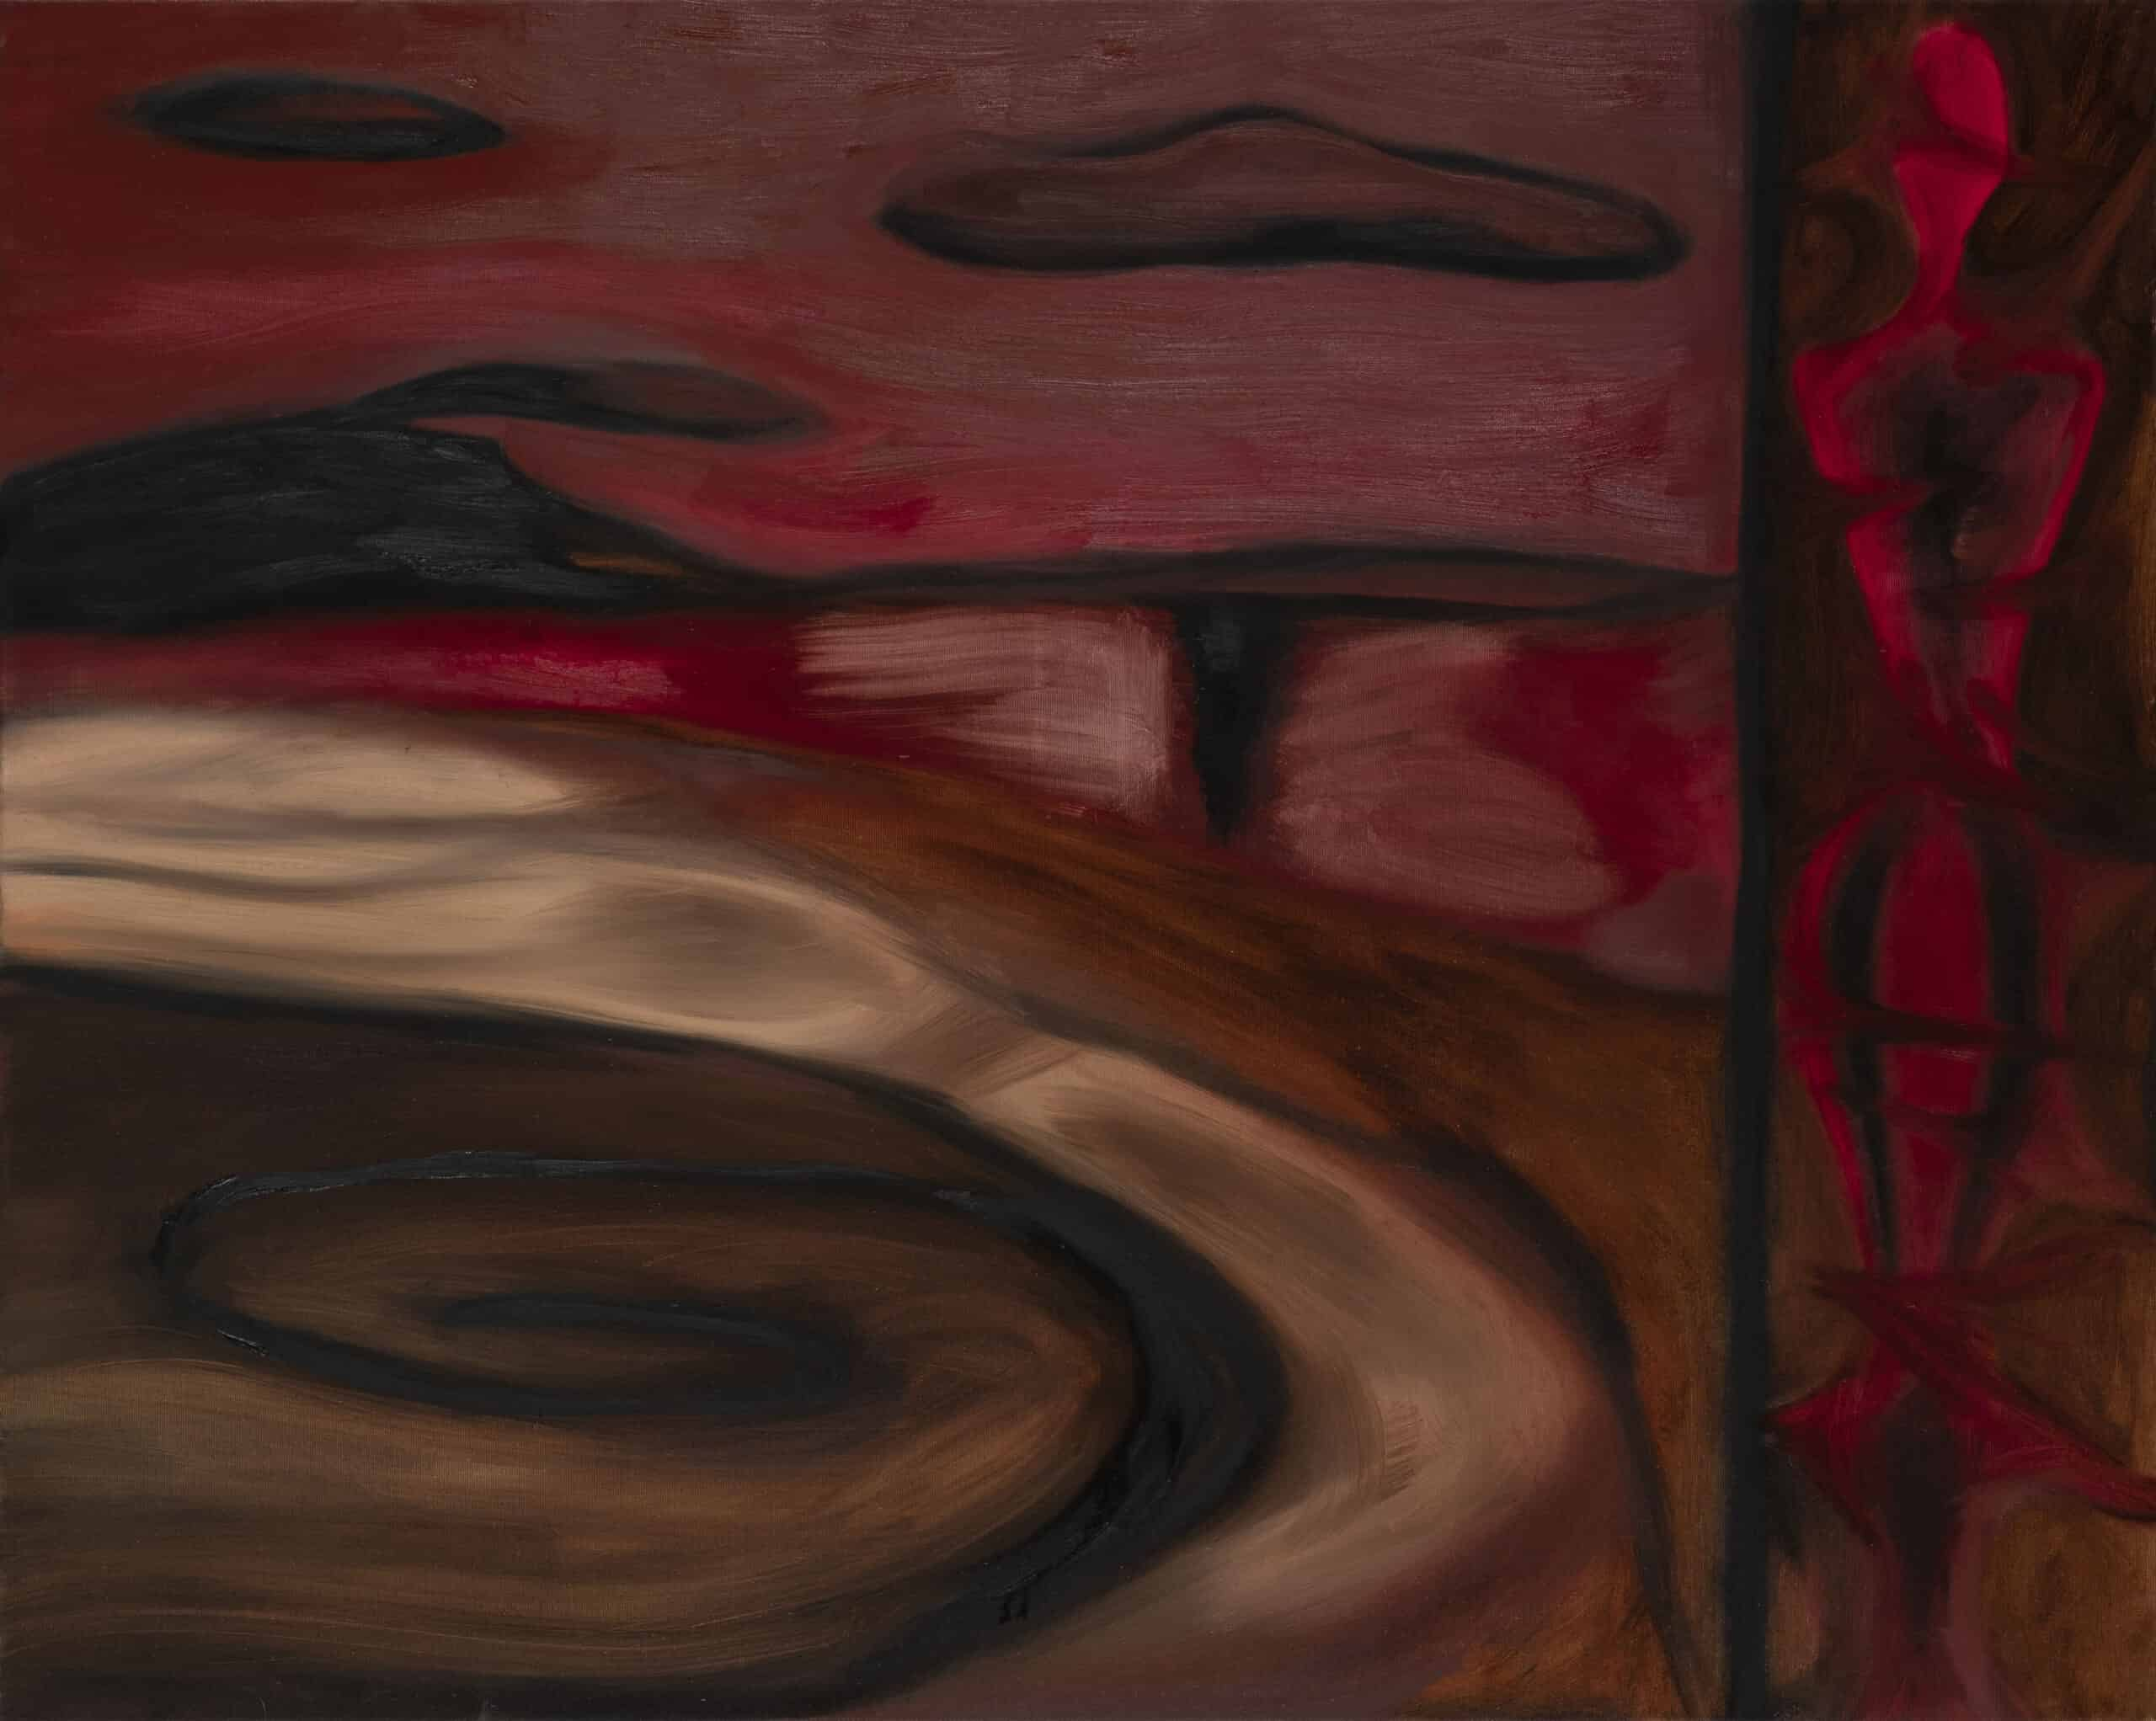 Self-portait with red landscape, oil on linen, 2020